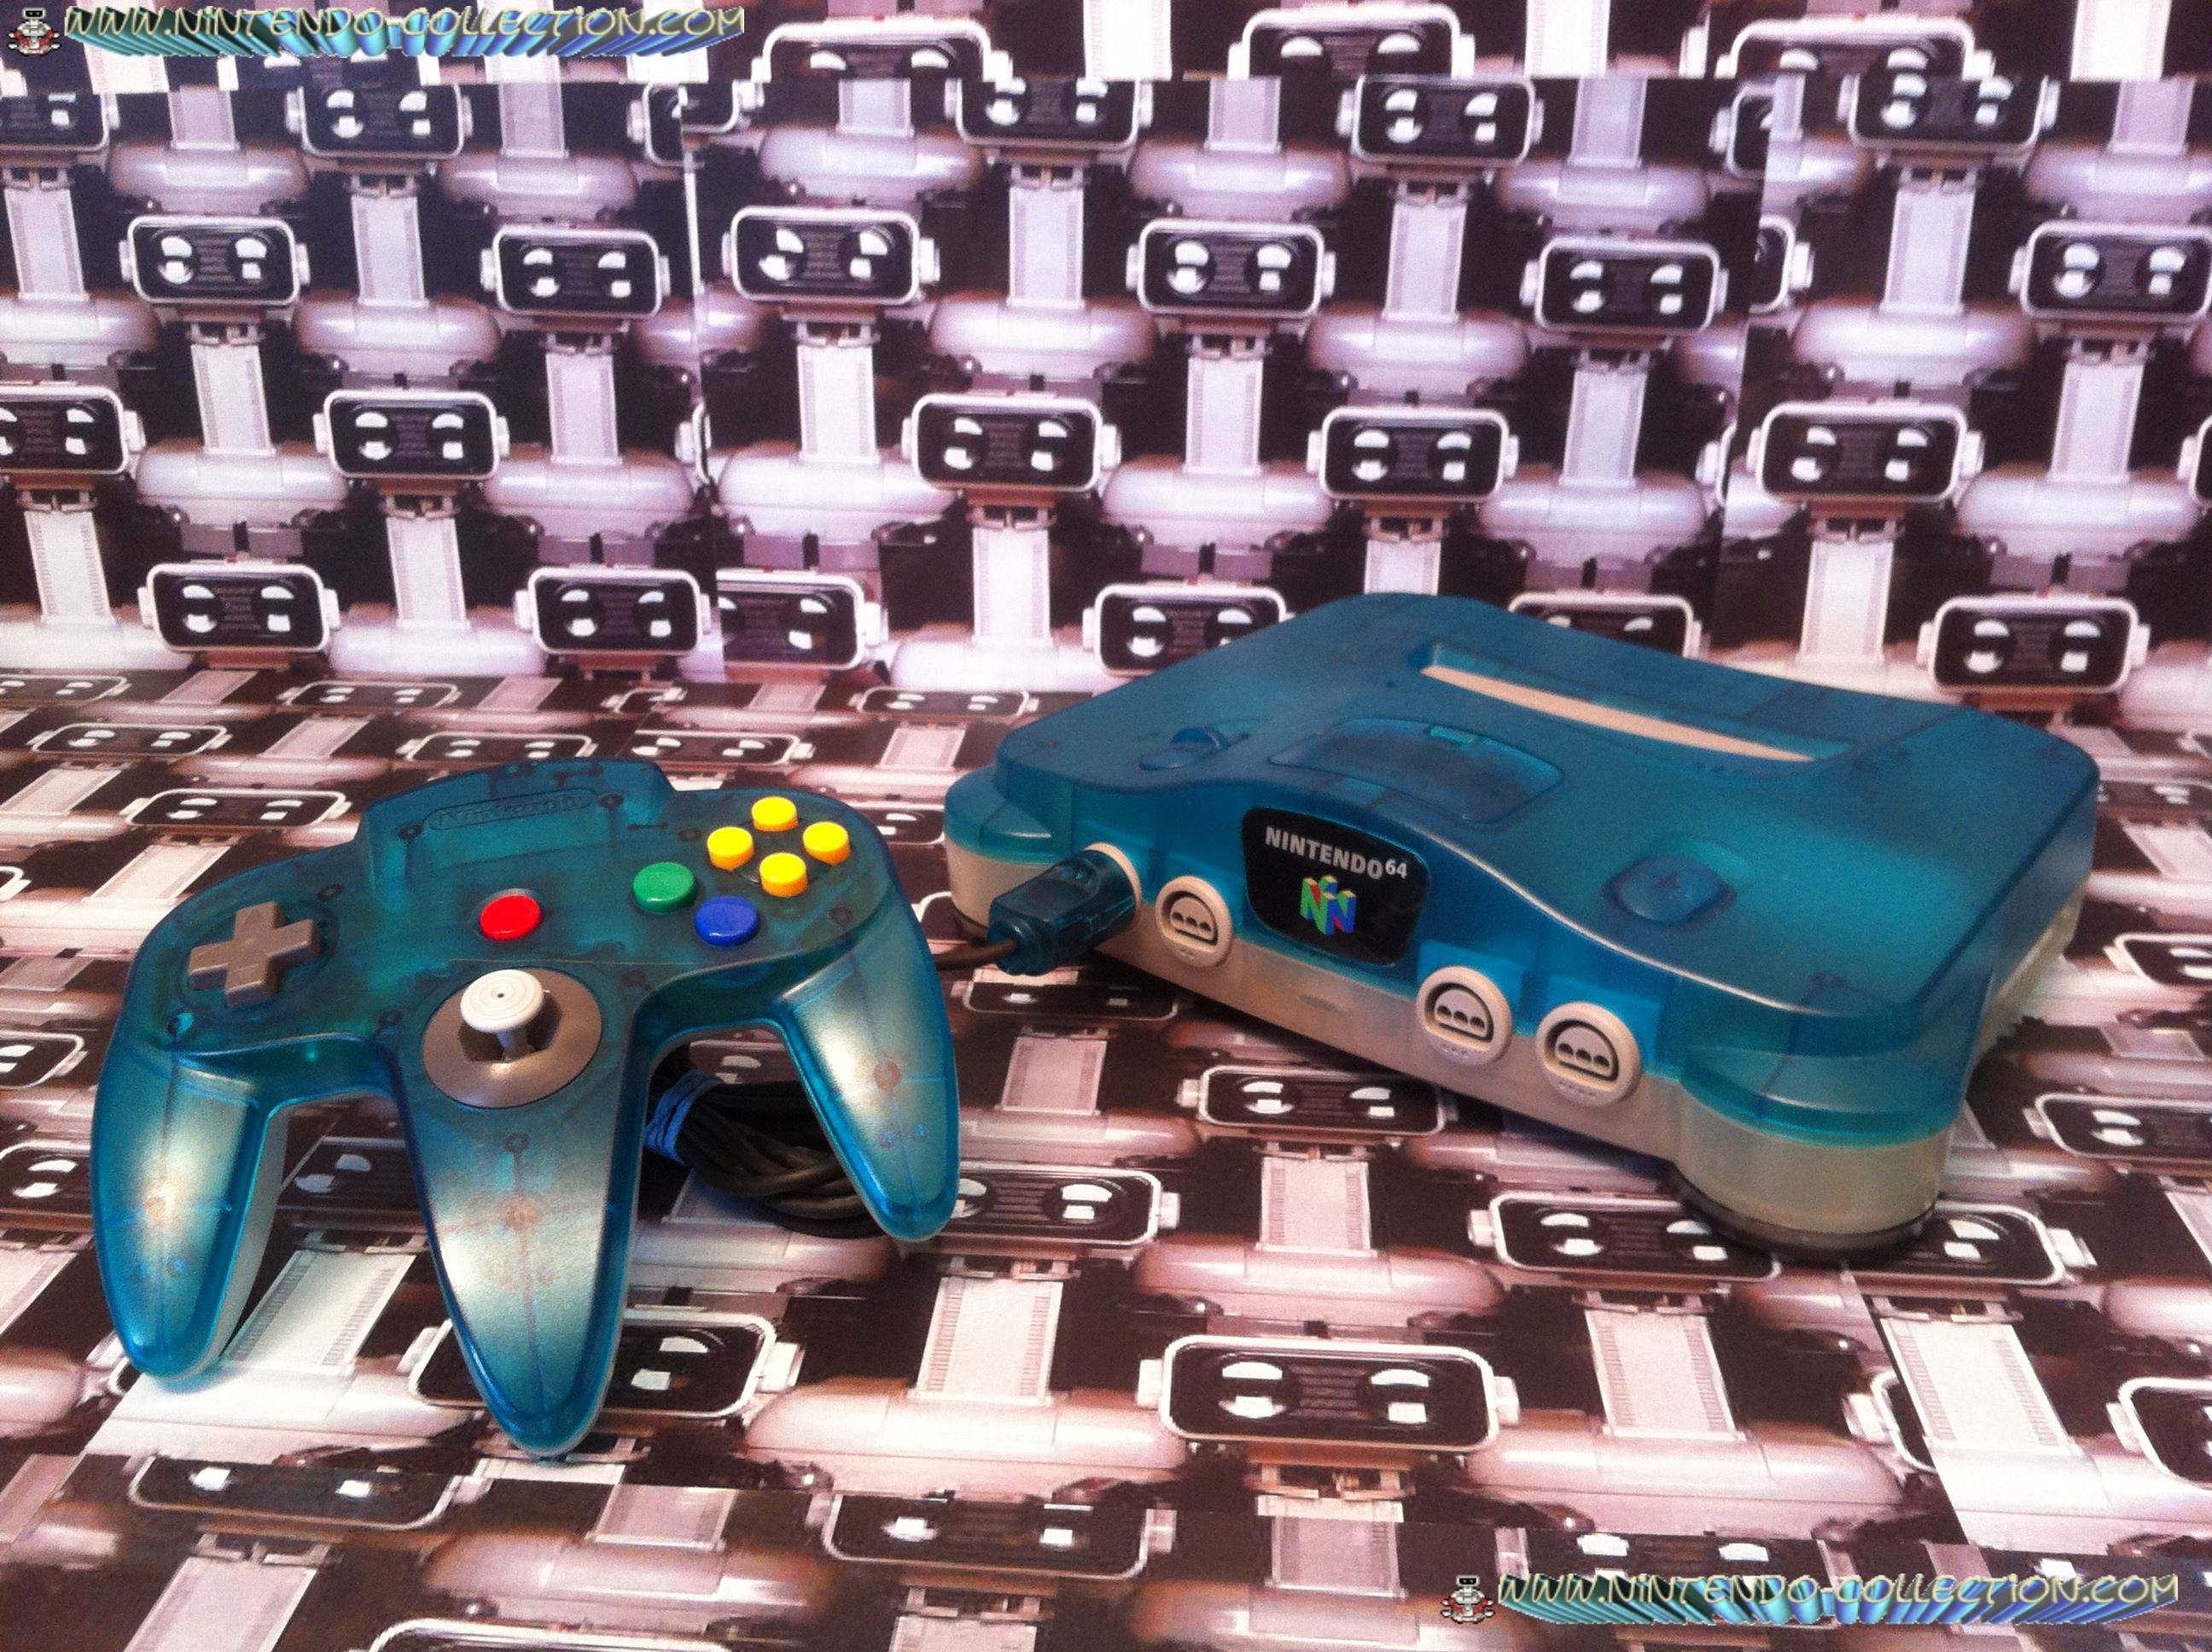 www.nintendo-collection.com - Nintendo 64 N64 Clear Blue and Clear White - Bleu transparente et blan